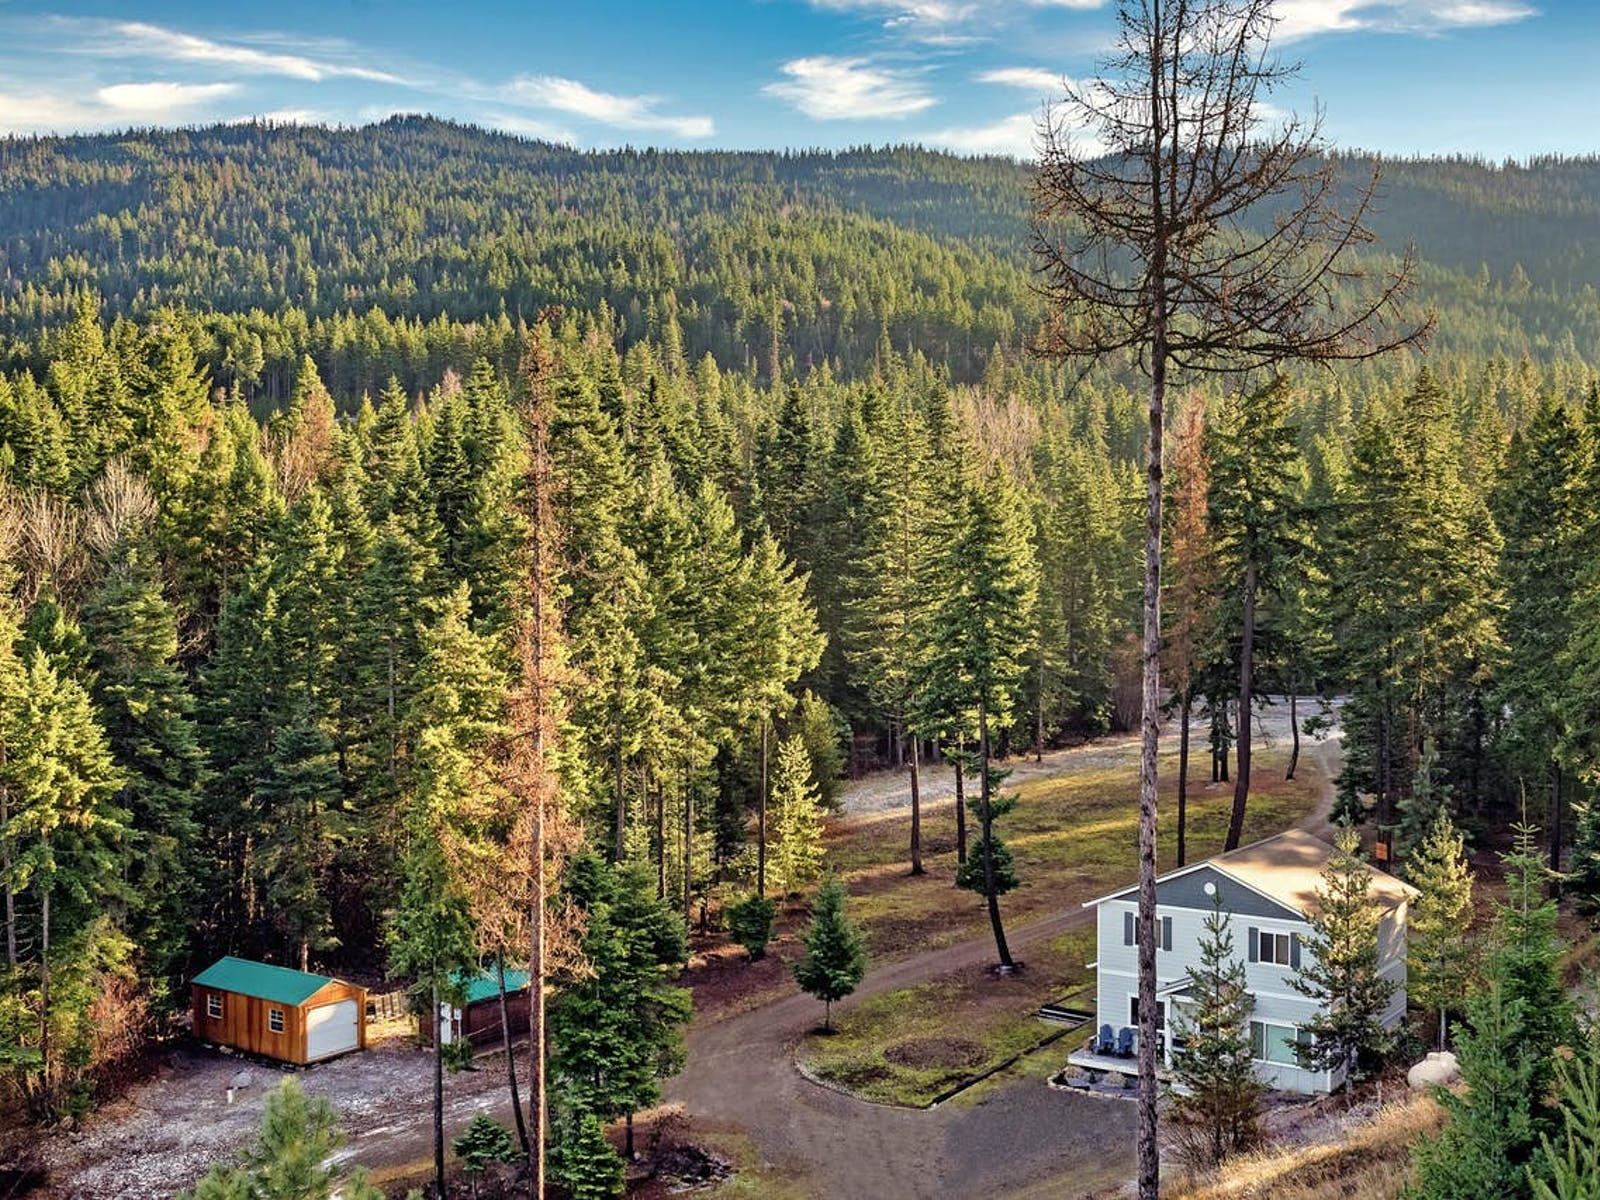 forests of Cle Elum, WA